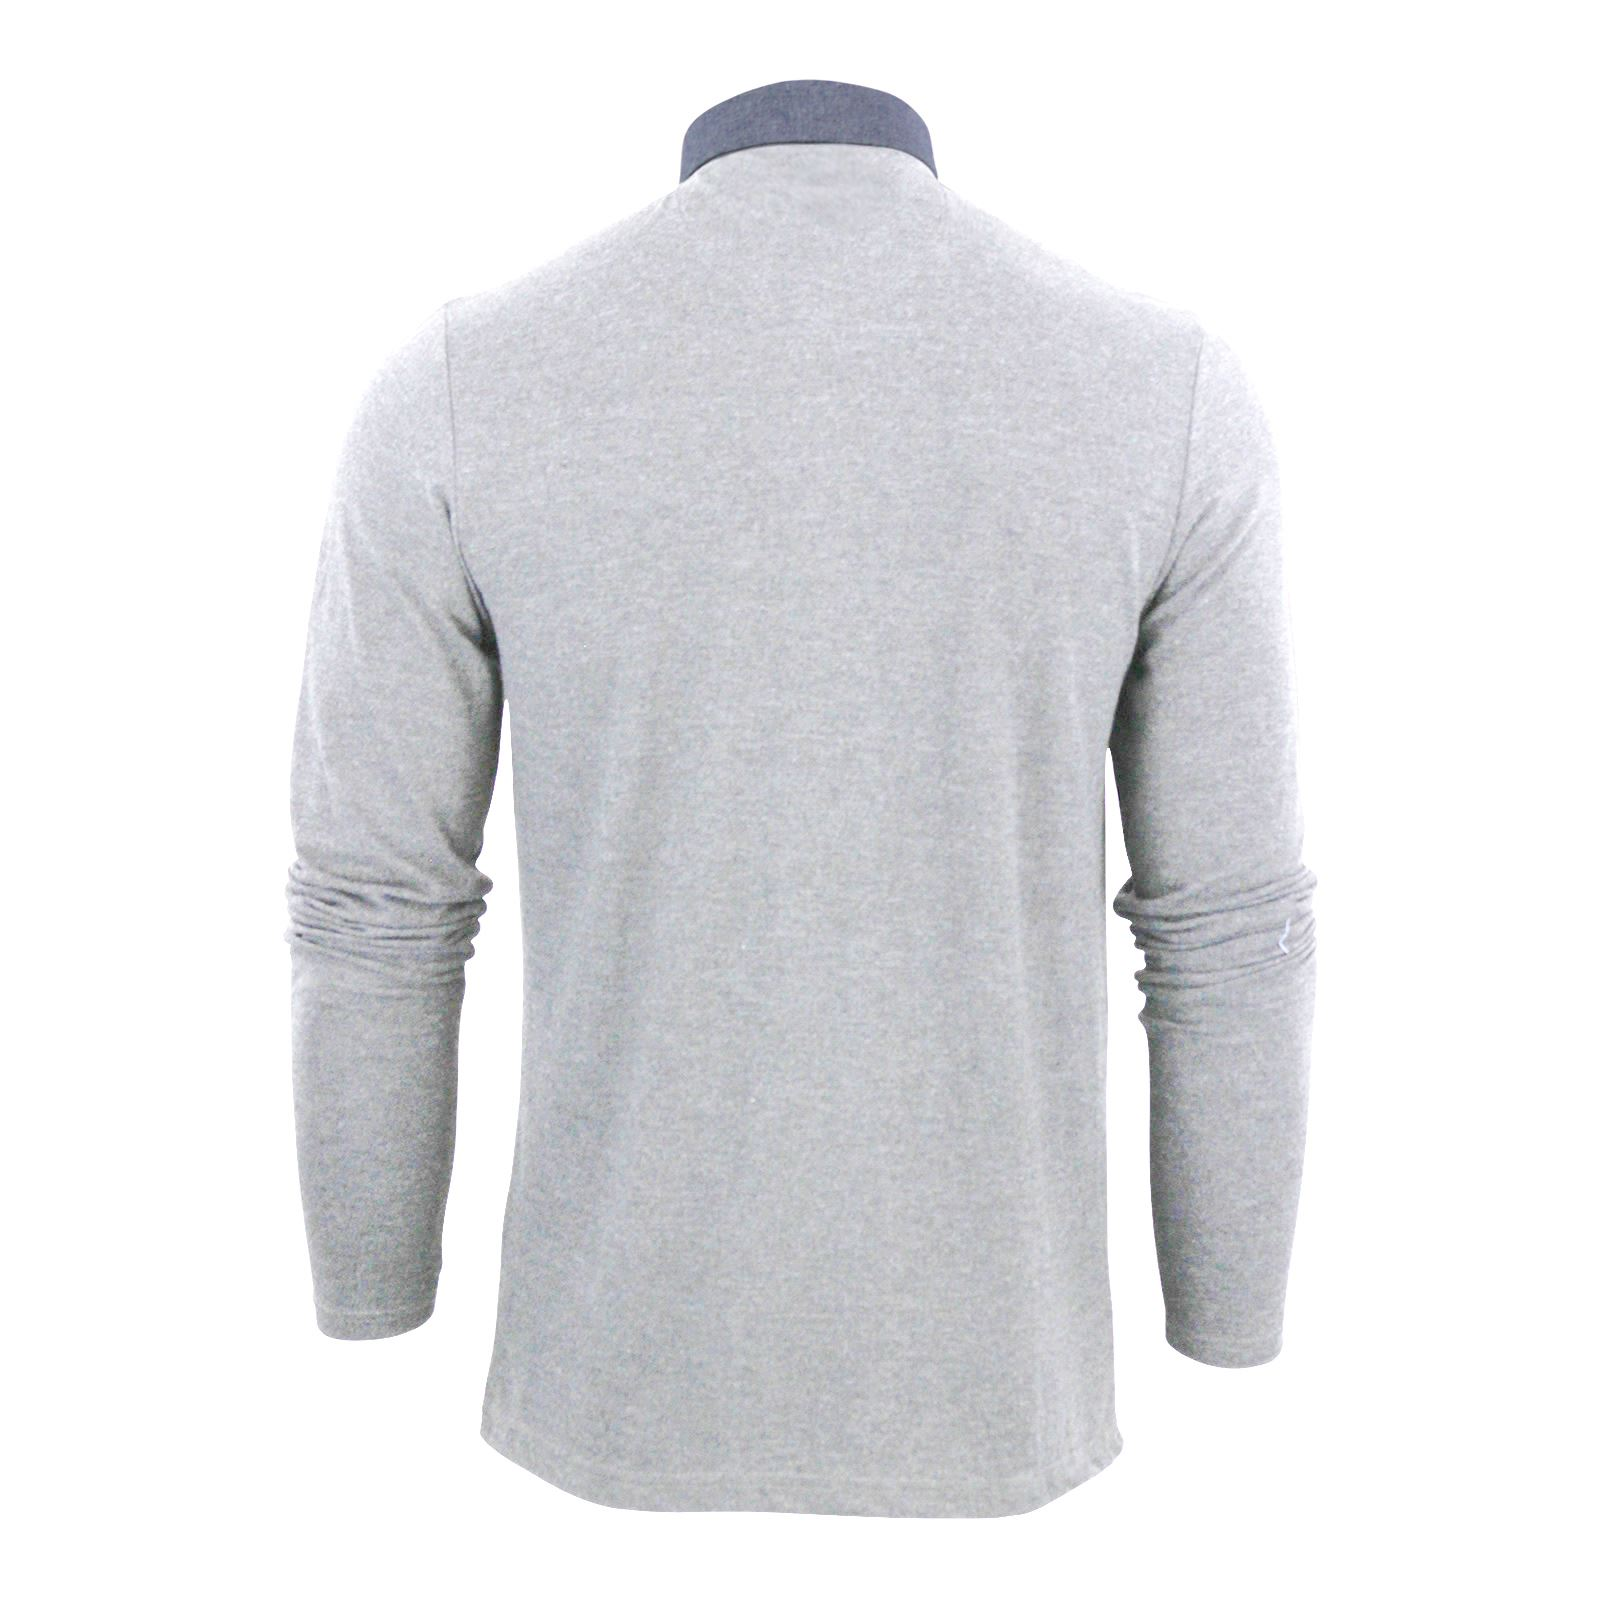 Mens-Polo-T-Shirt-Brave-Soul-Hera-Cotton-Long-Sleeve-Casual-Top thumbnail 9